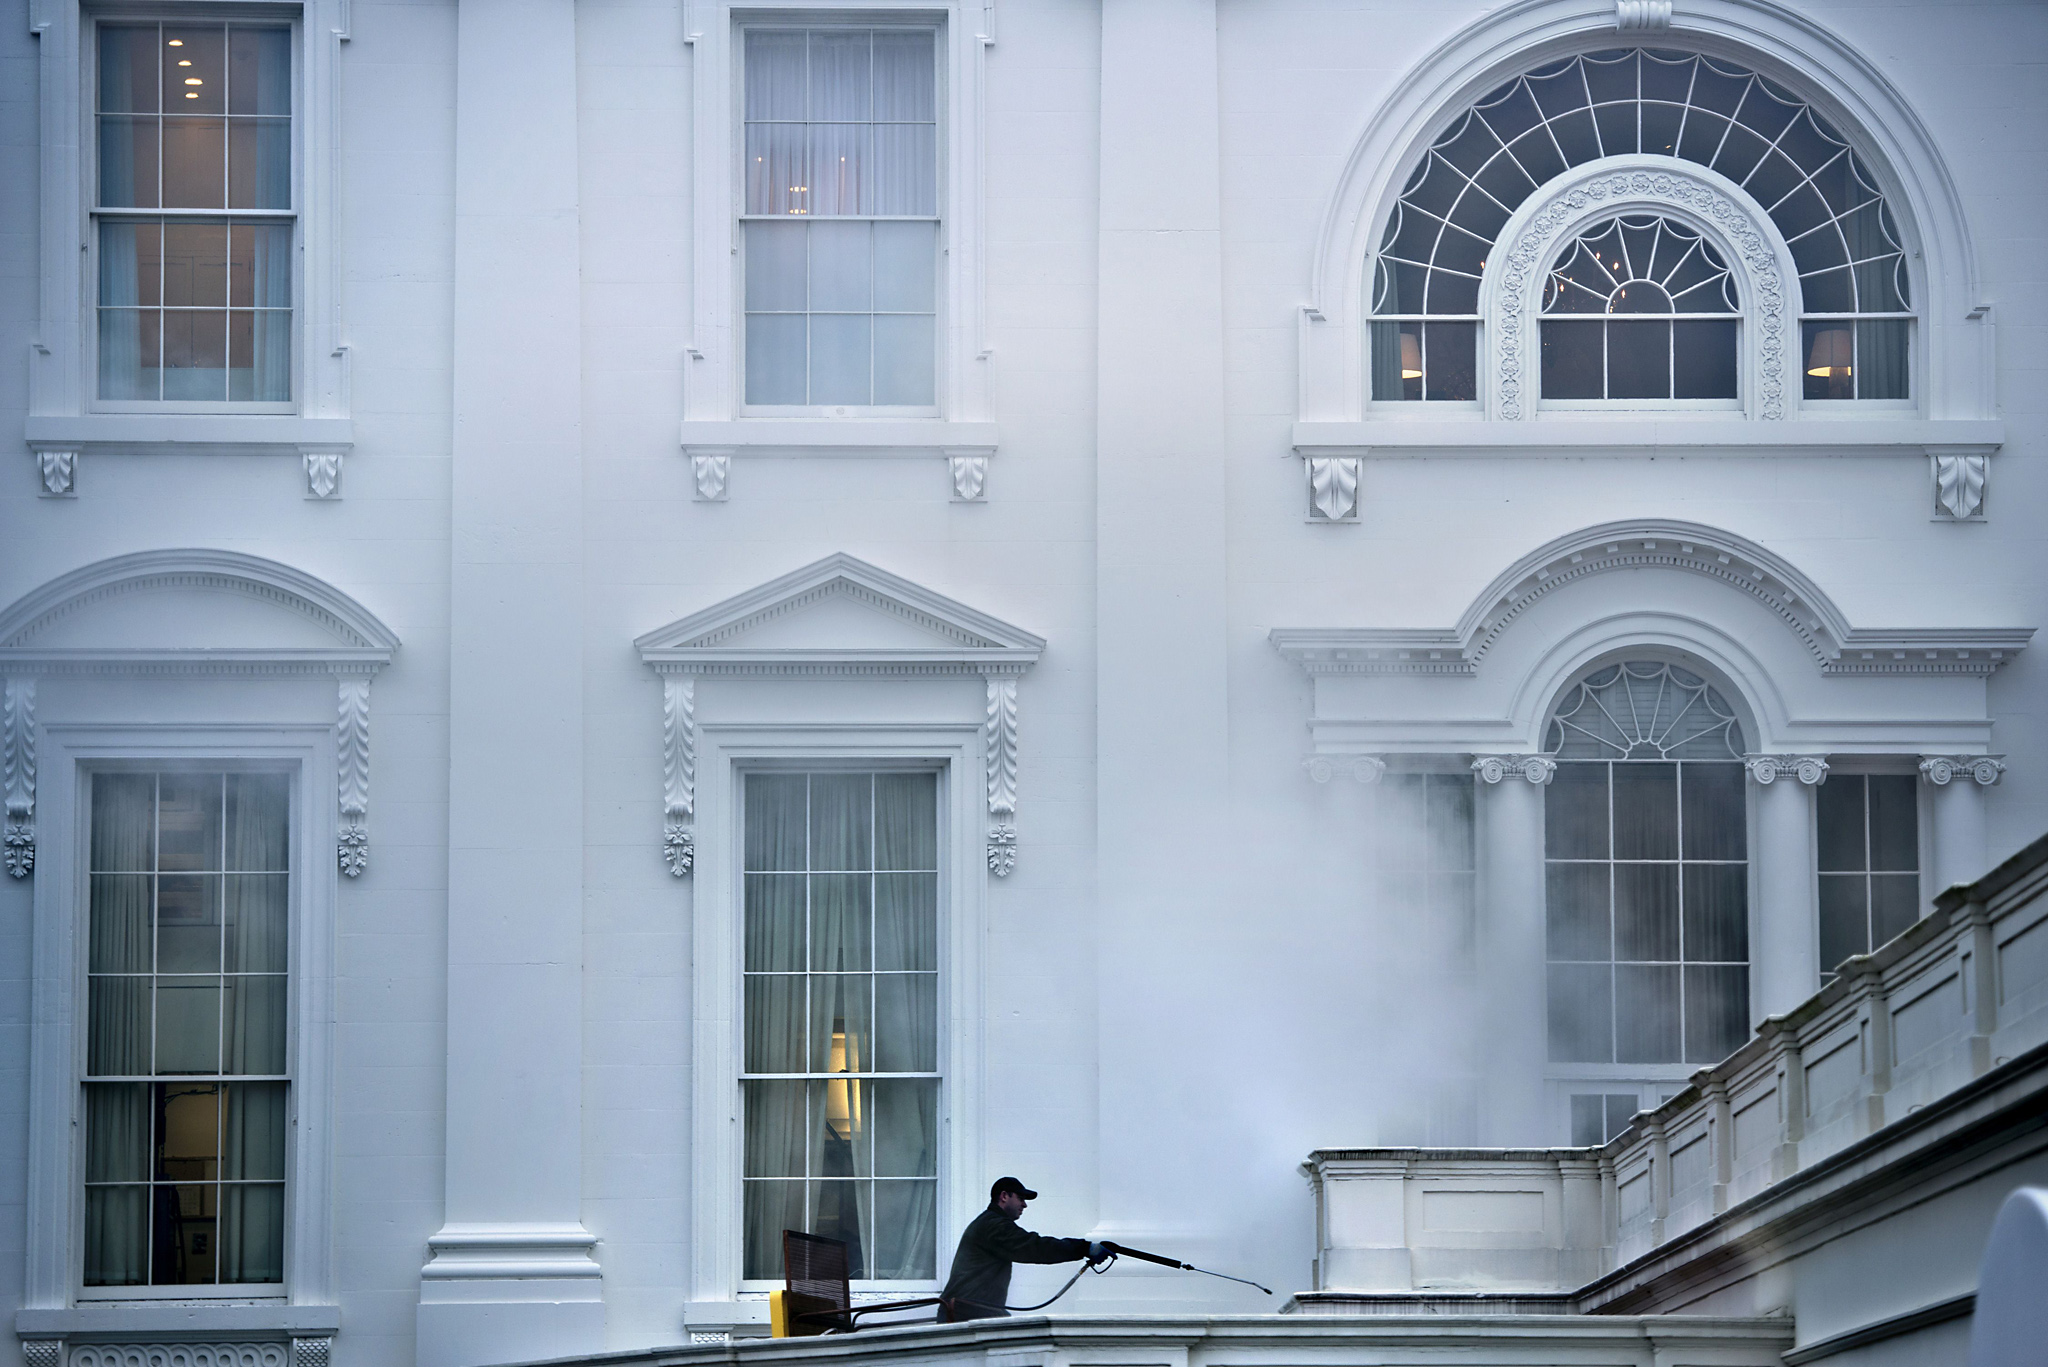 A worker power washes the West Wing of t...A worker power washes the West Wing of the White House January 15, 2014 in Washington, DC. AFP PHOTO/Brendan SMIALOWSKIBRENDAN SMIALOWSKI/AFP/Getty Images